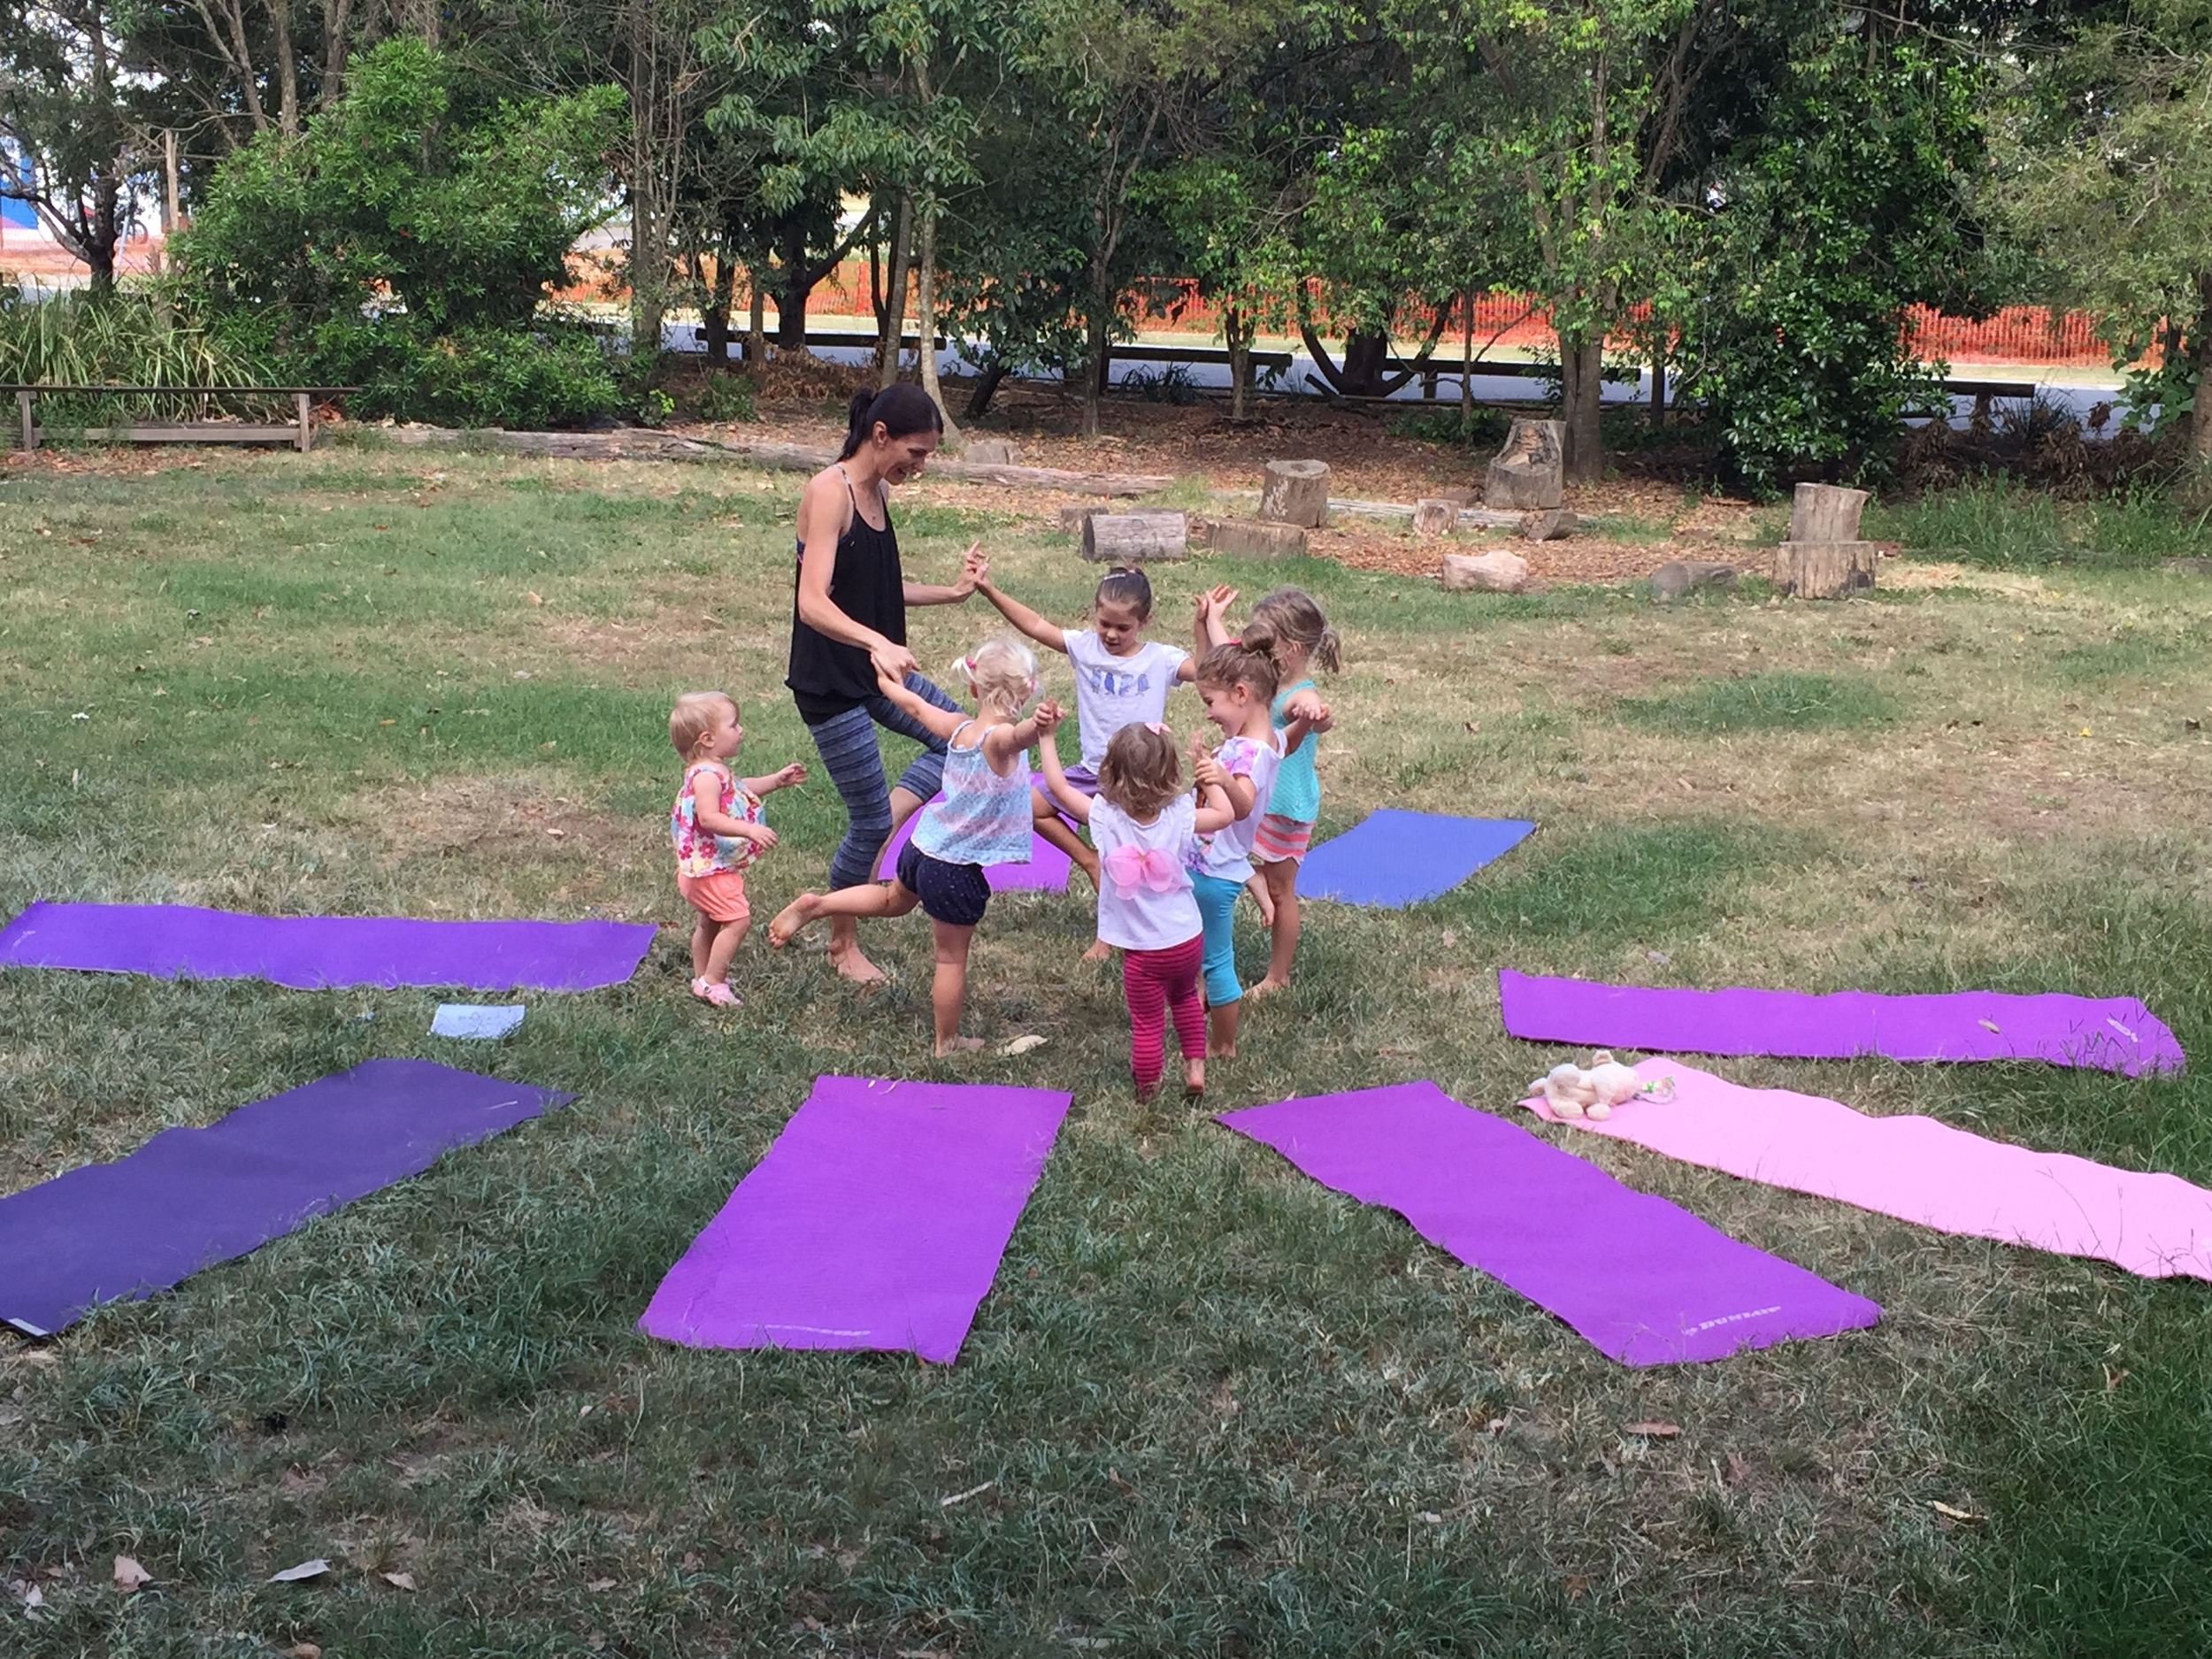 More successful group tree pose!